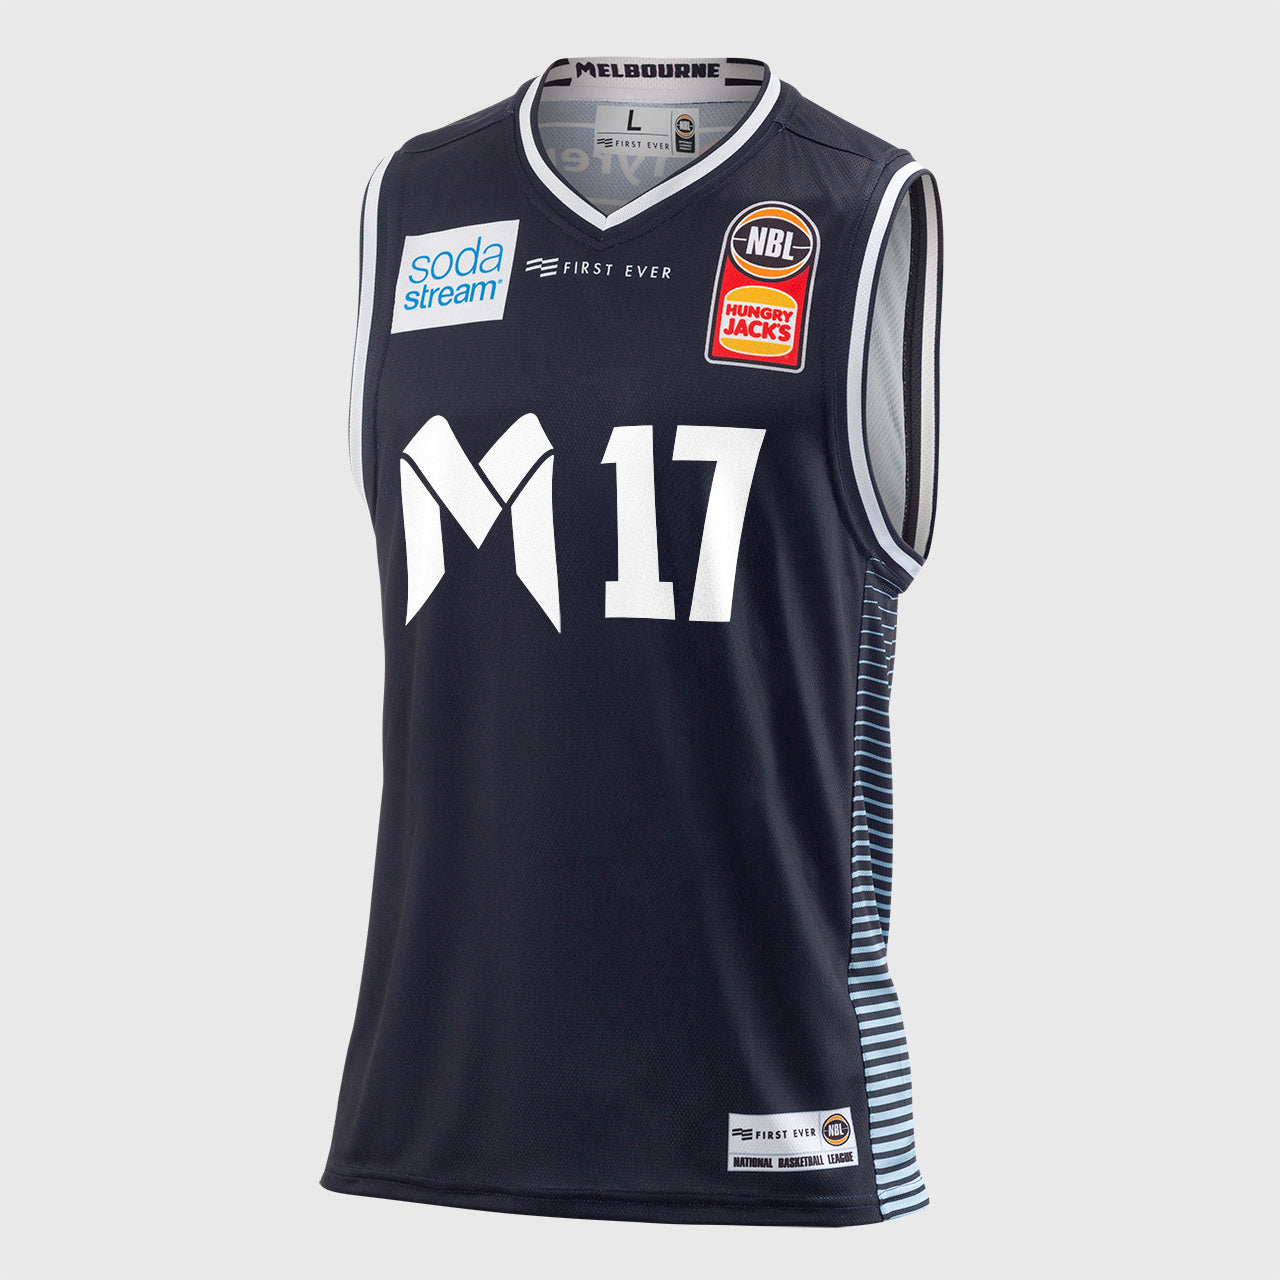 Melbourne United 18/19 Authentic Jersey - DJ Kennedy